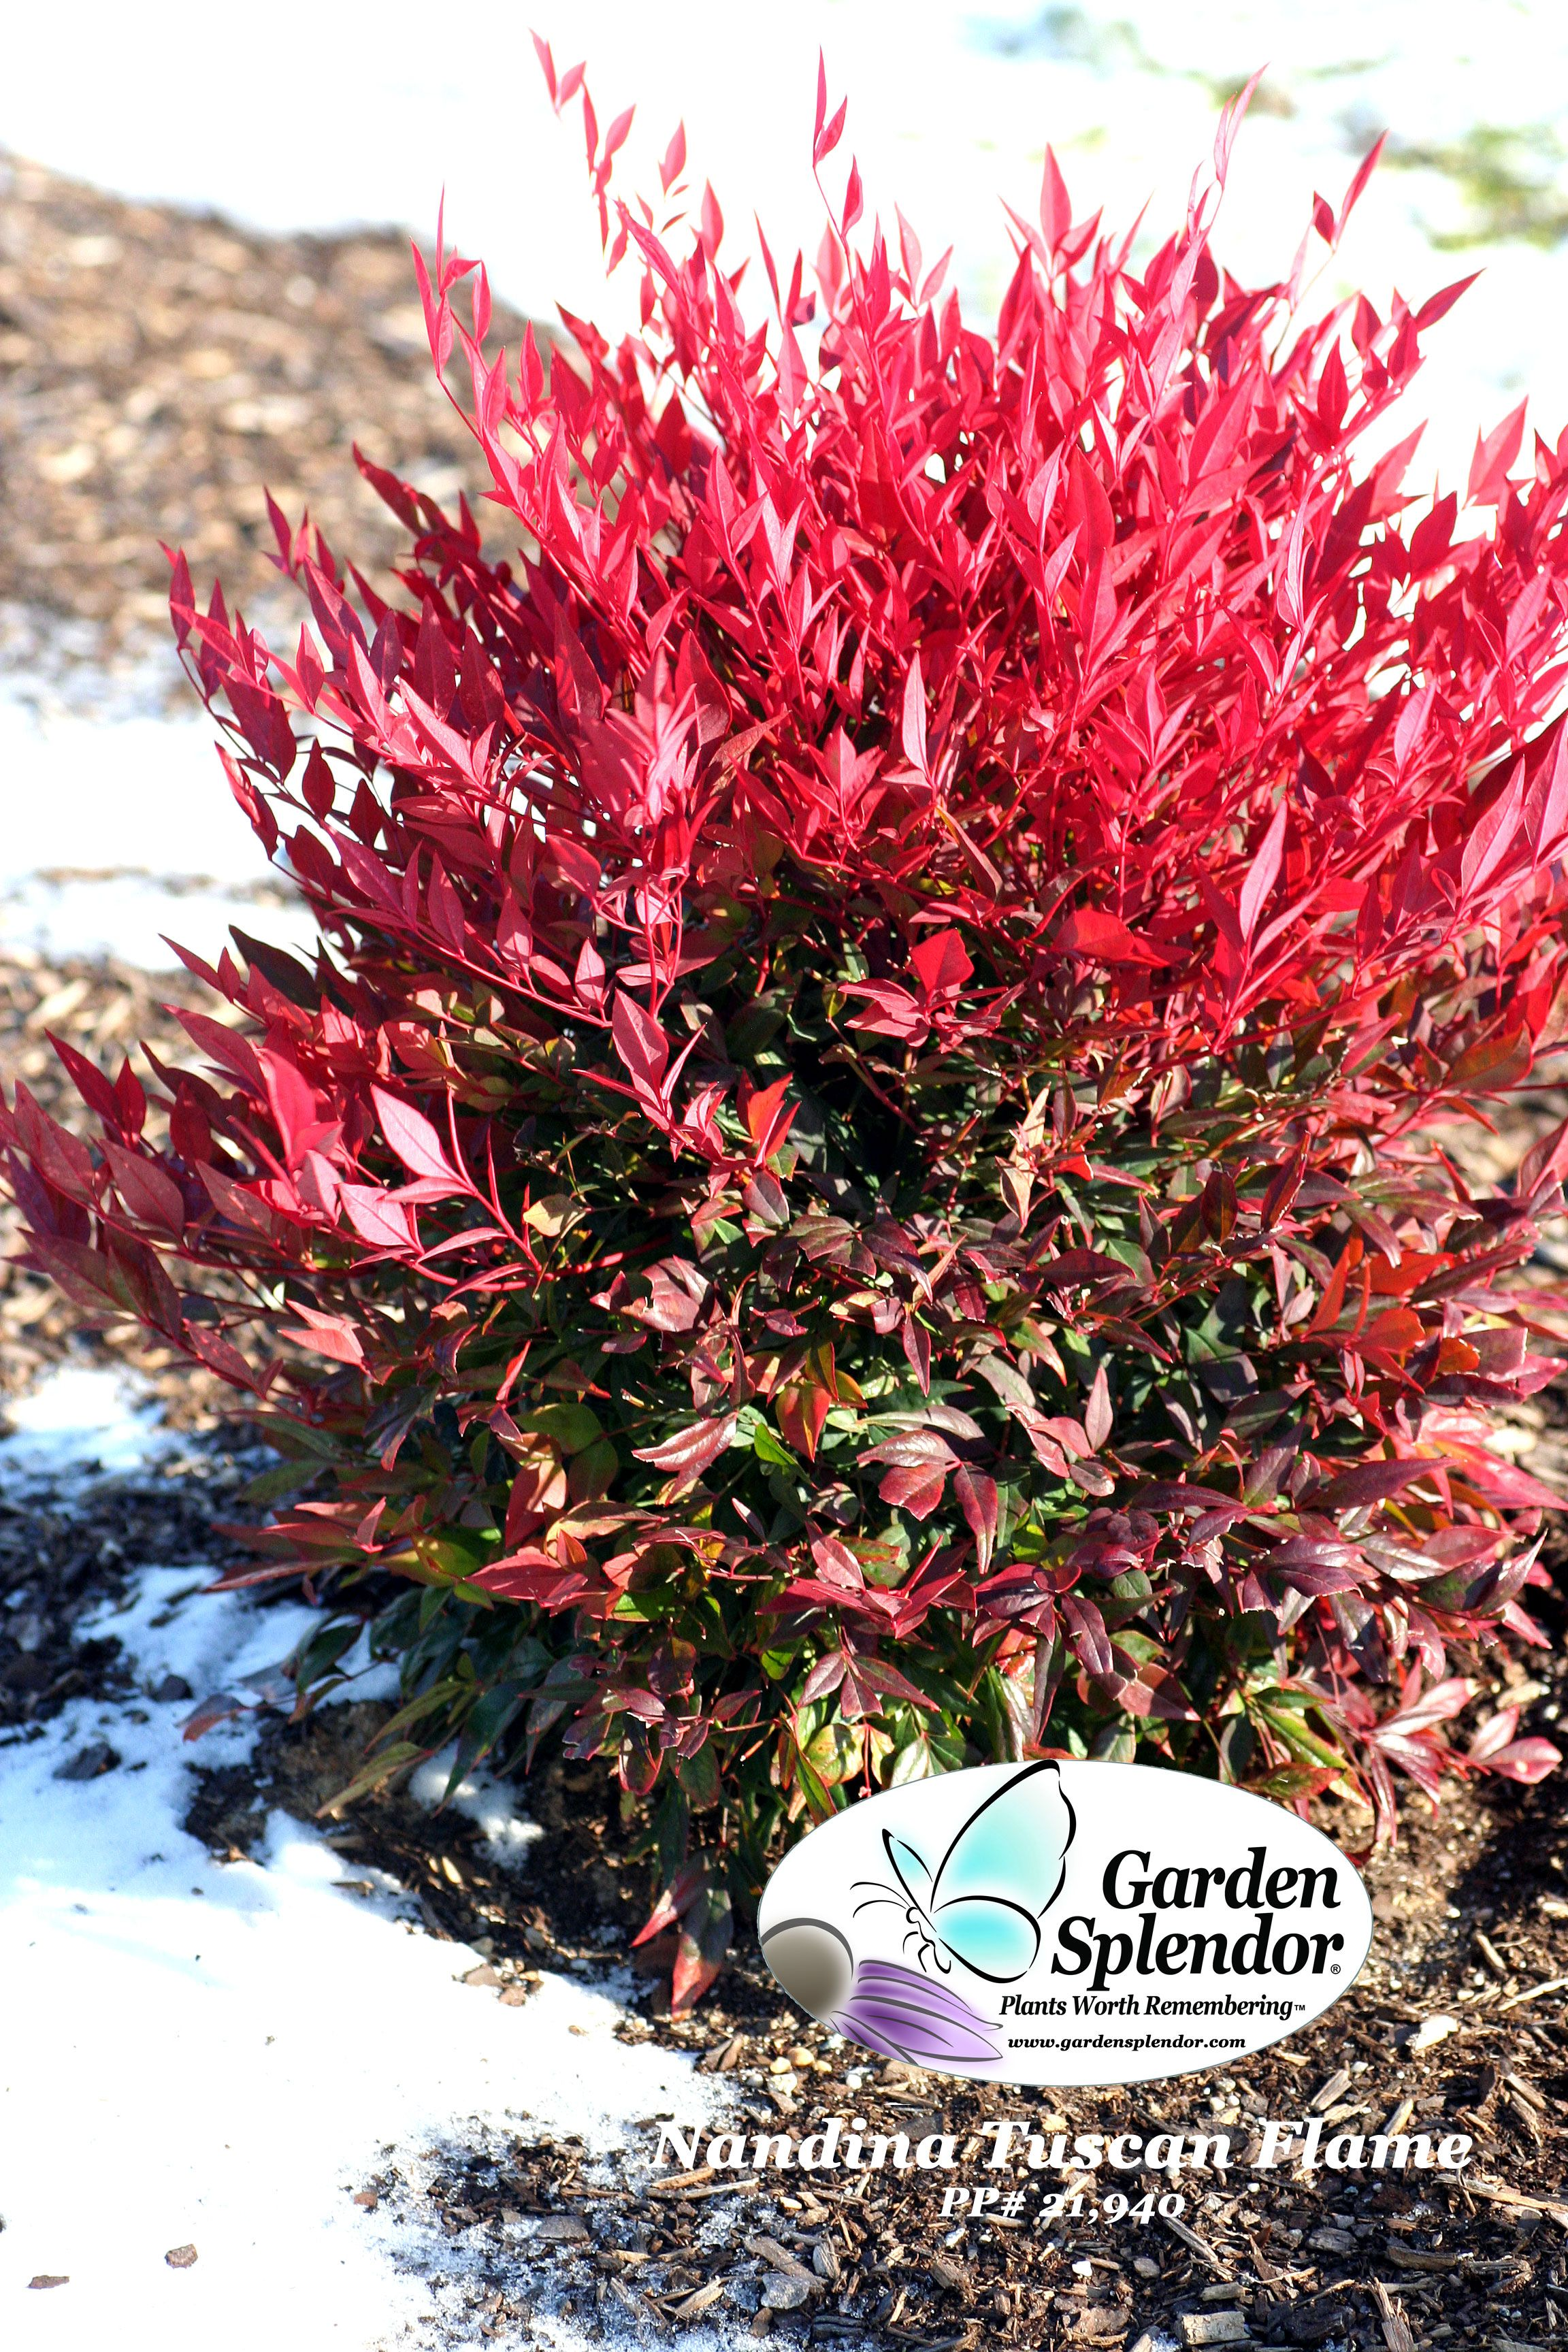 Nandina 'Tuscan Flame' (Heavenly Bamboo) with it's bright colorful evergreen foliage looks wonderful at any time of year, but just look how spectacular it looks in the winter landscape.   It positively glows against a snowy backdrop. Hardy in Zone 6 (and warmer), it is easy to grow and virtually maintenance free. For longest and most effective display grow in sunny or partially shaded sites and avoid open exposed positions.     Look for it at Garden Splendor centers  More…